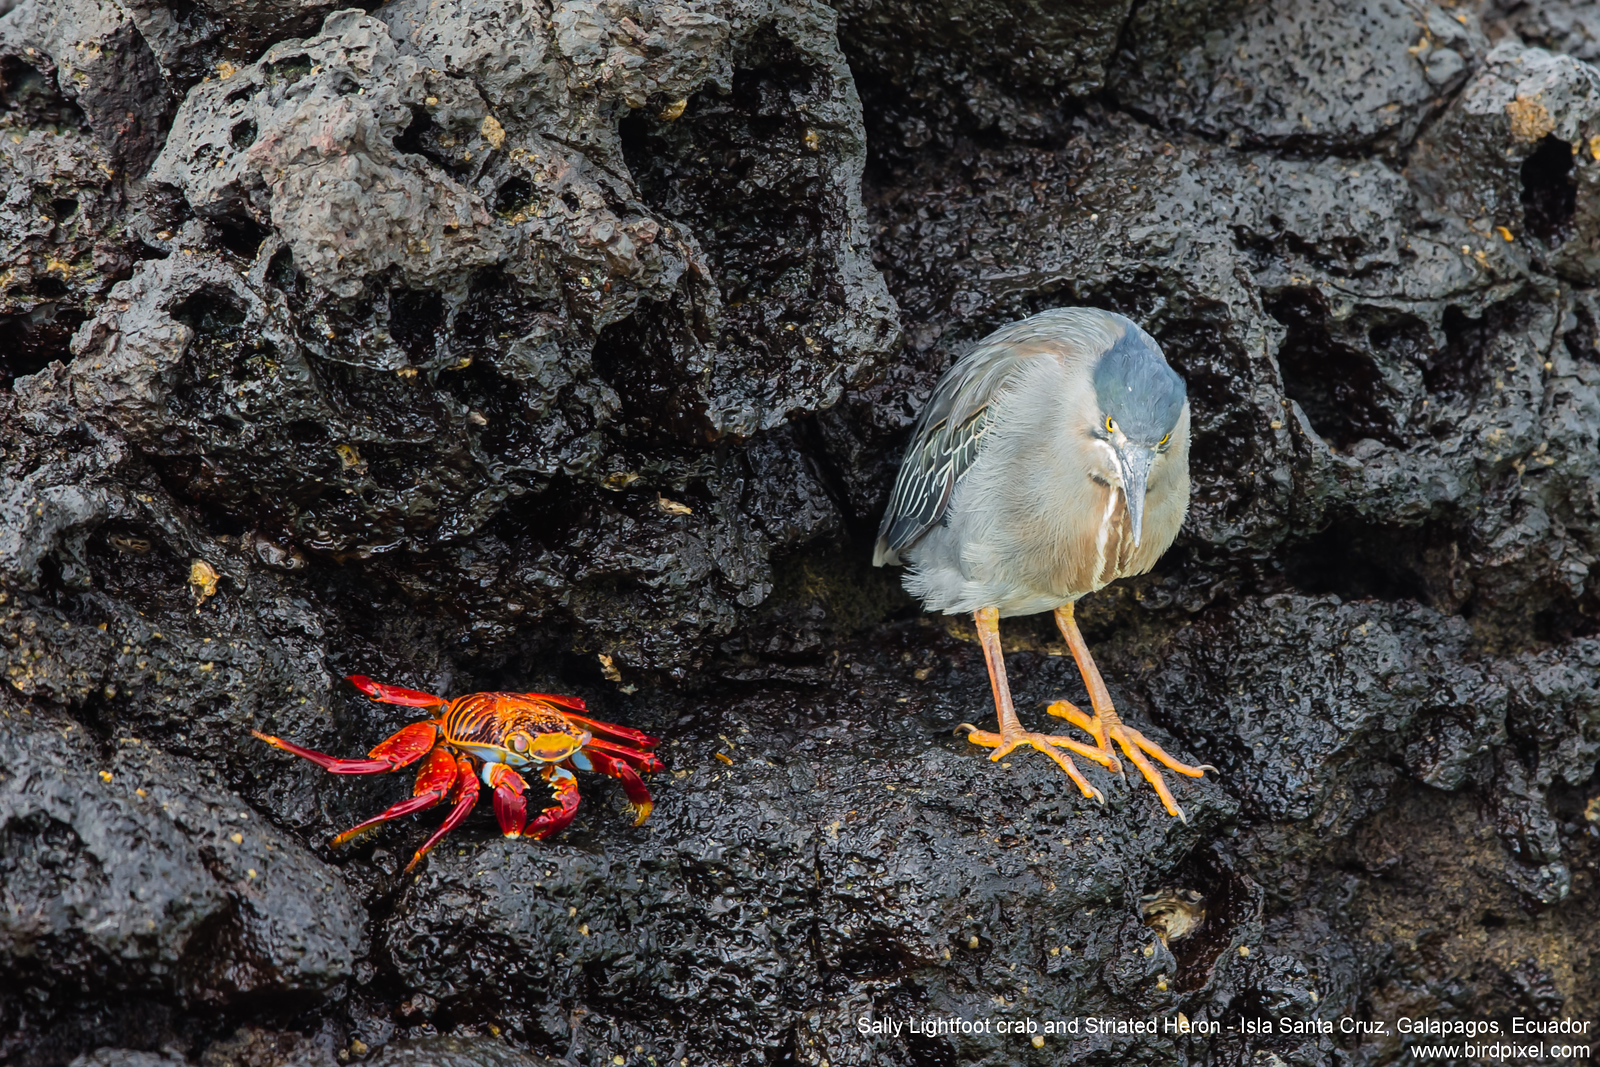 Sally Lightfoot crab and Striated Heron - Isla Santa Cruz, Galapagos, Ecuador